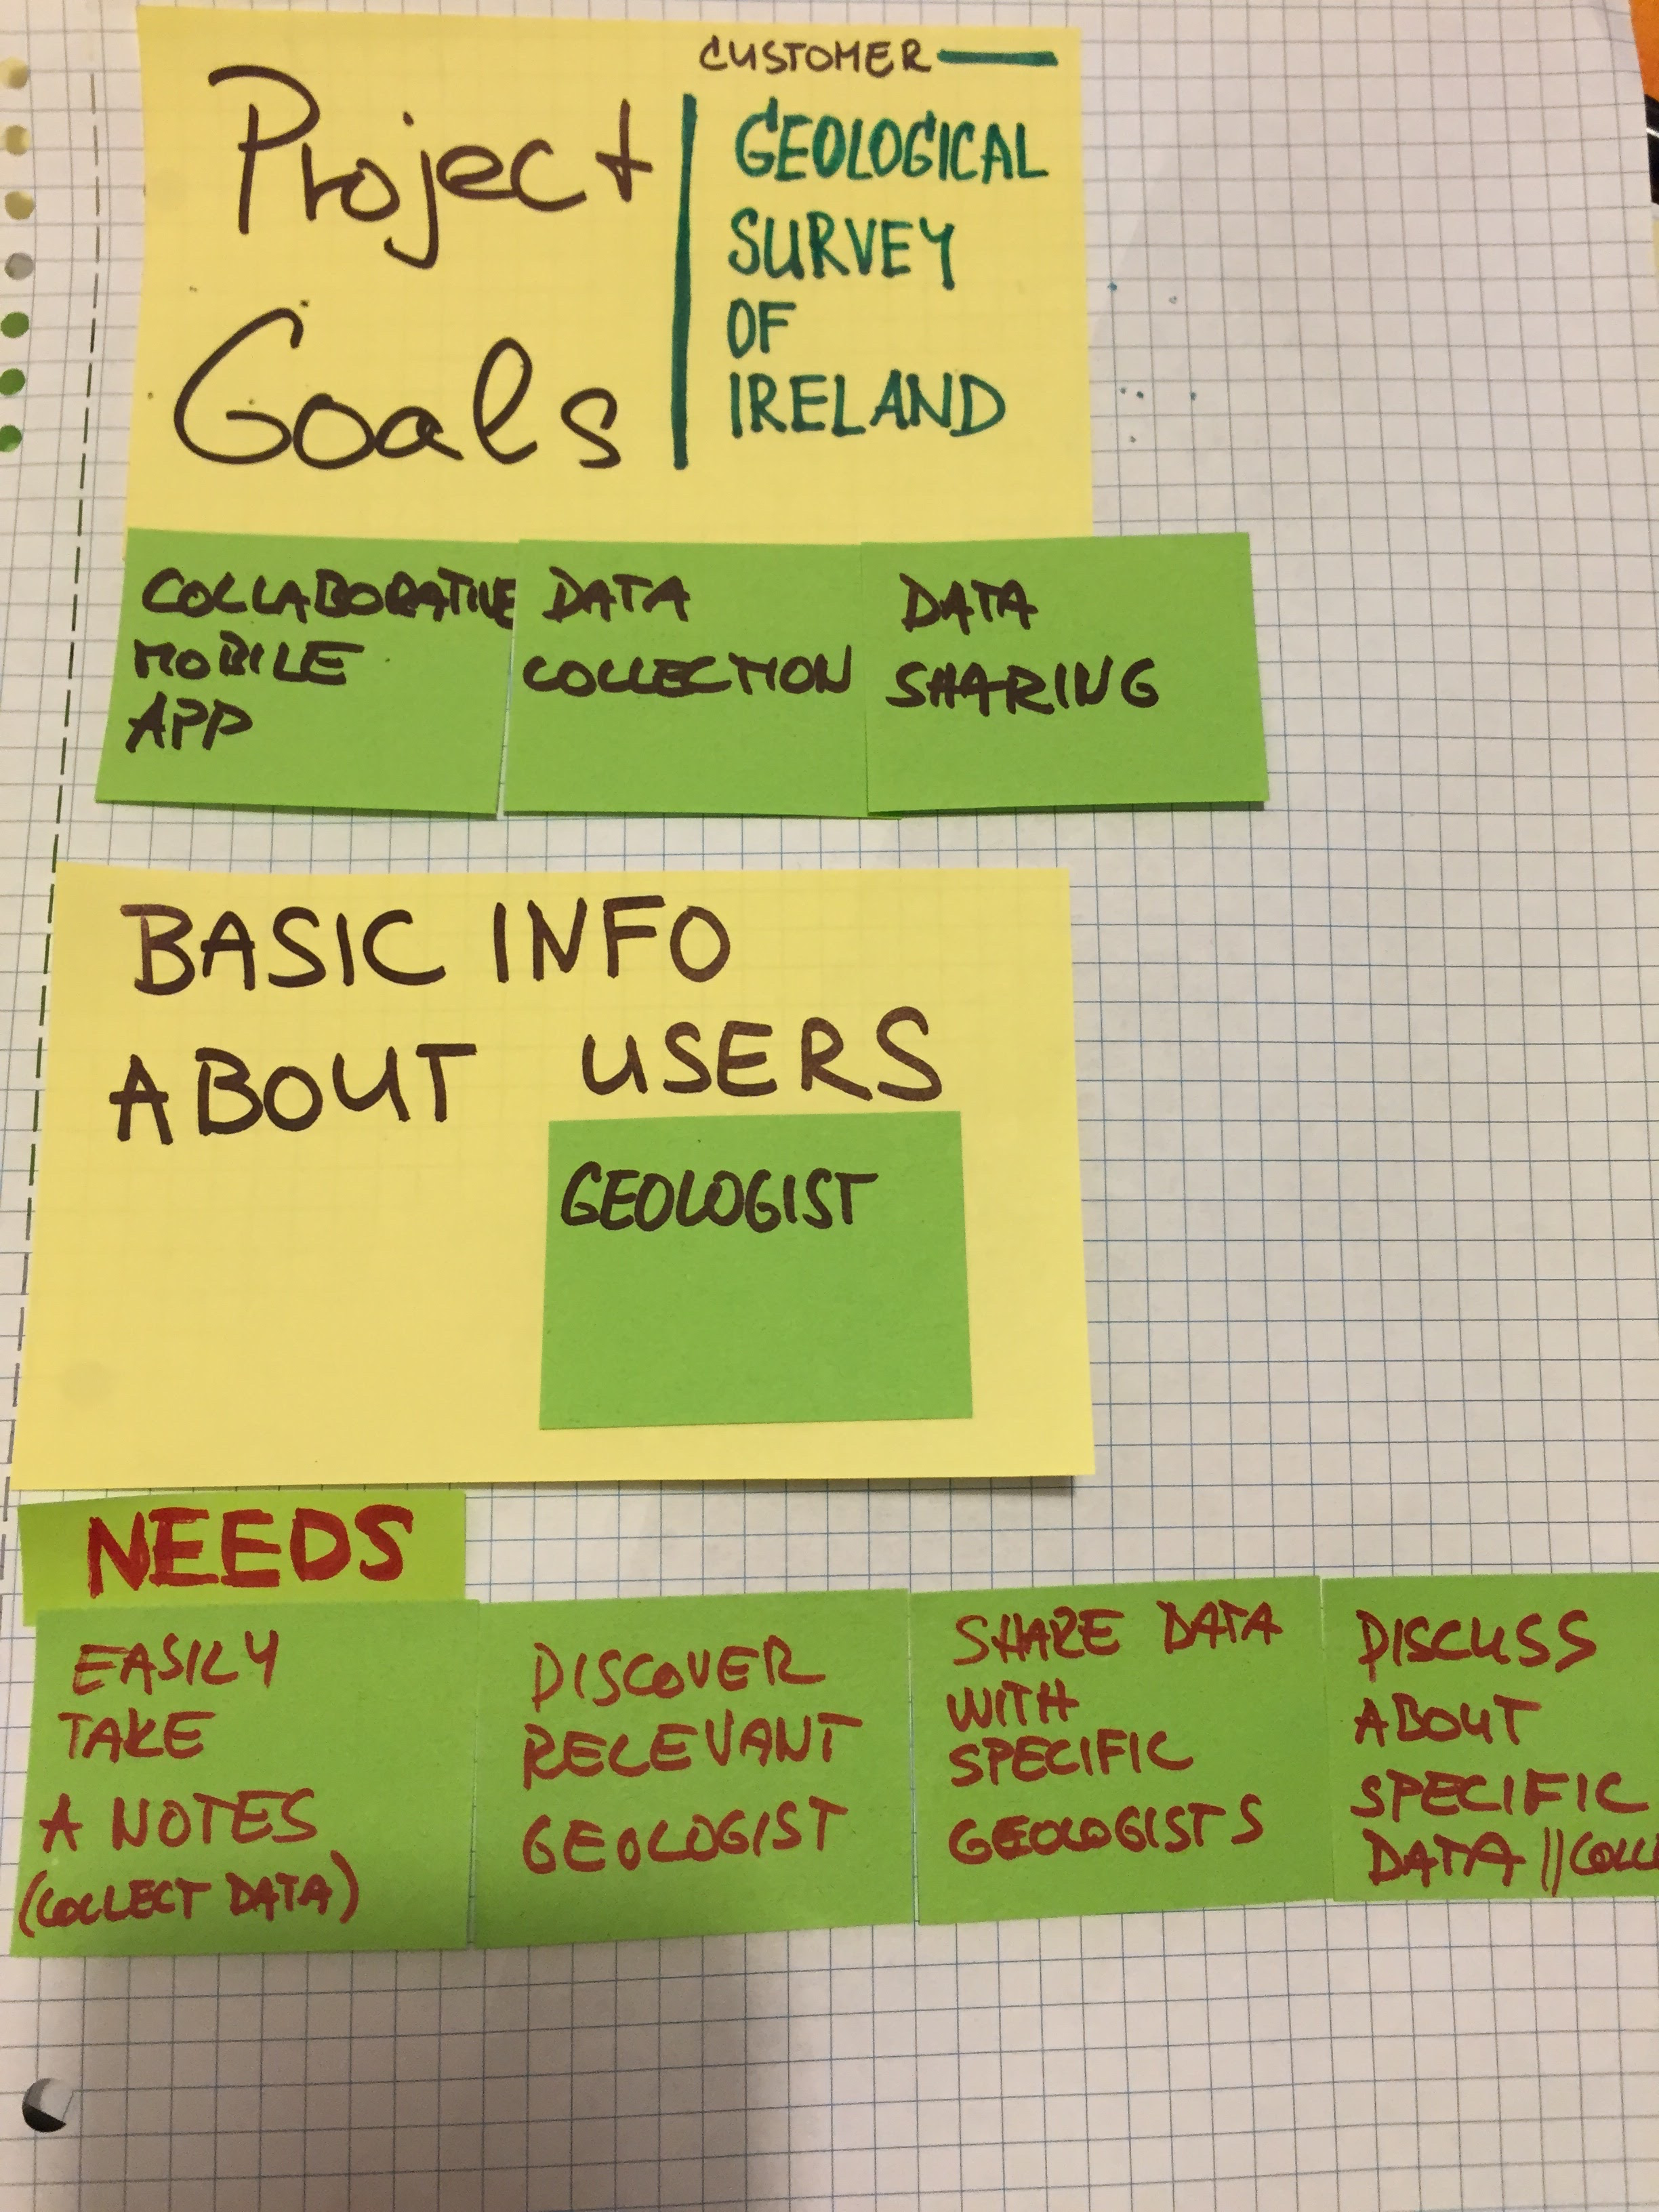 User Research - I didn't have enough information at the beginning